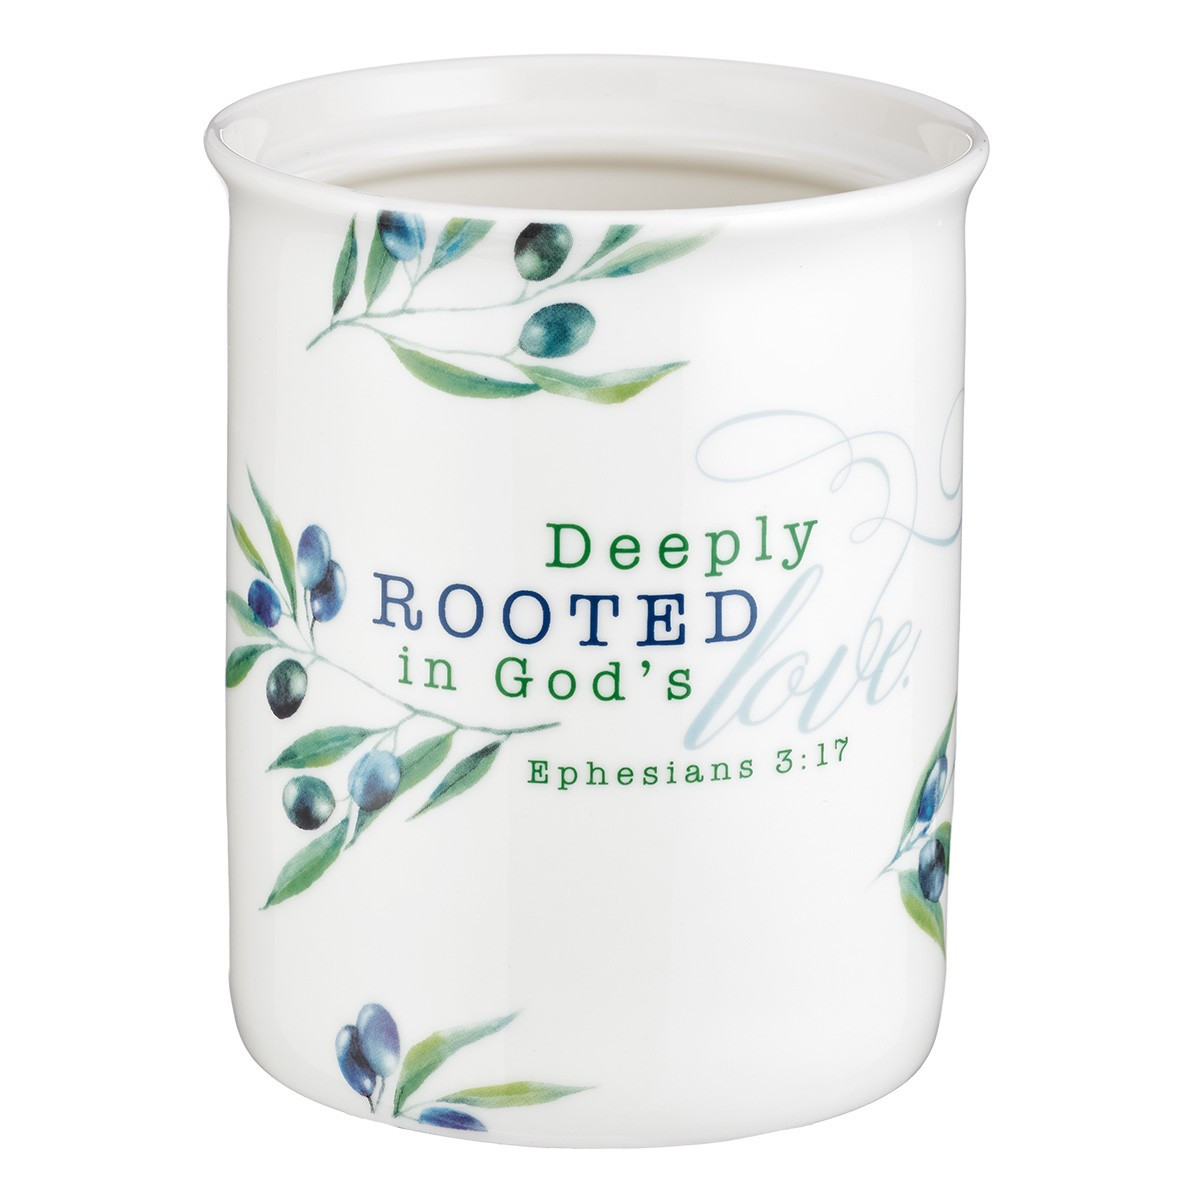 Kitchen Utensil Holder: Deeply Rooted in God\'s Love - Ephesians 3:17